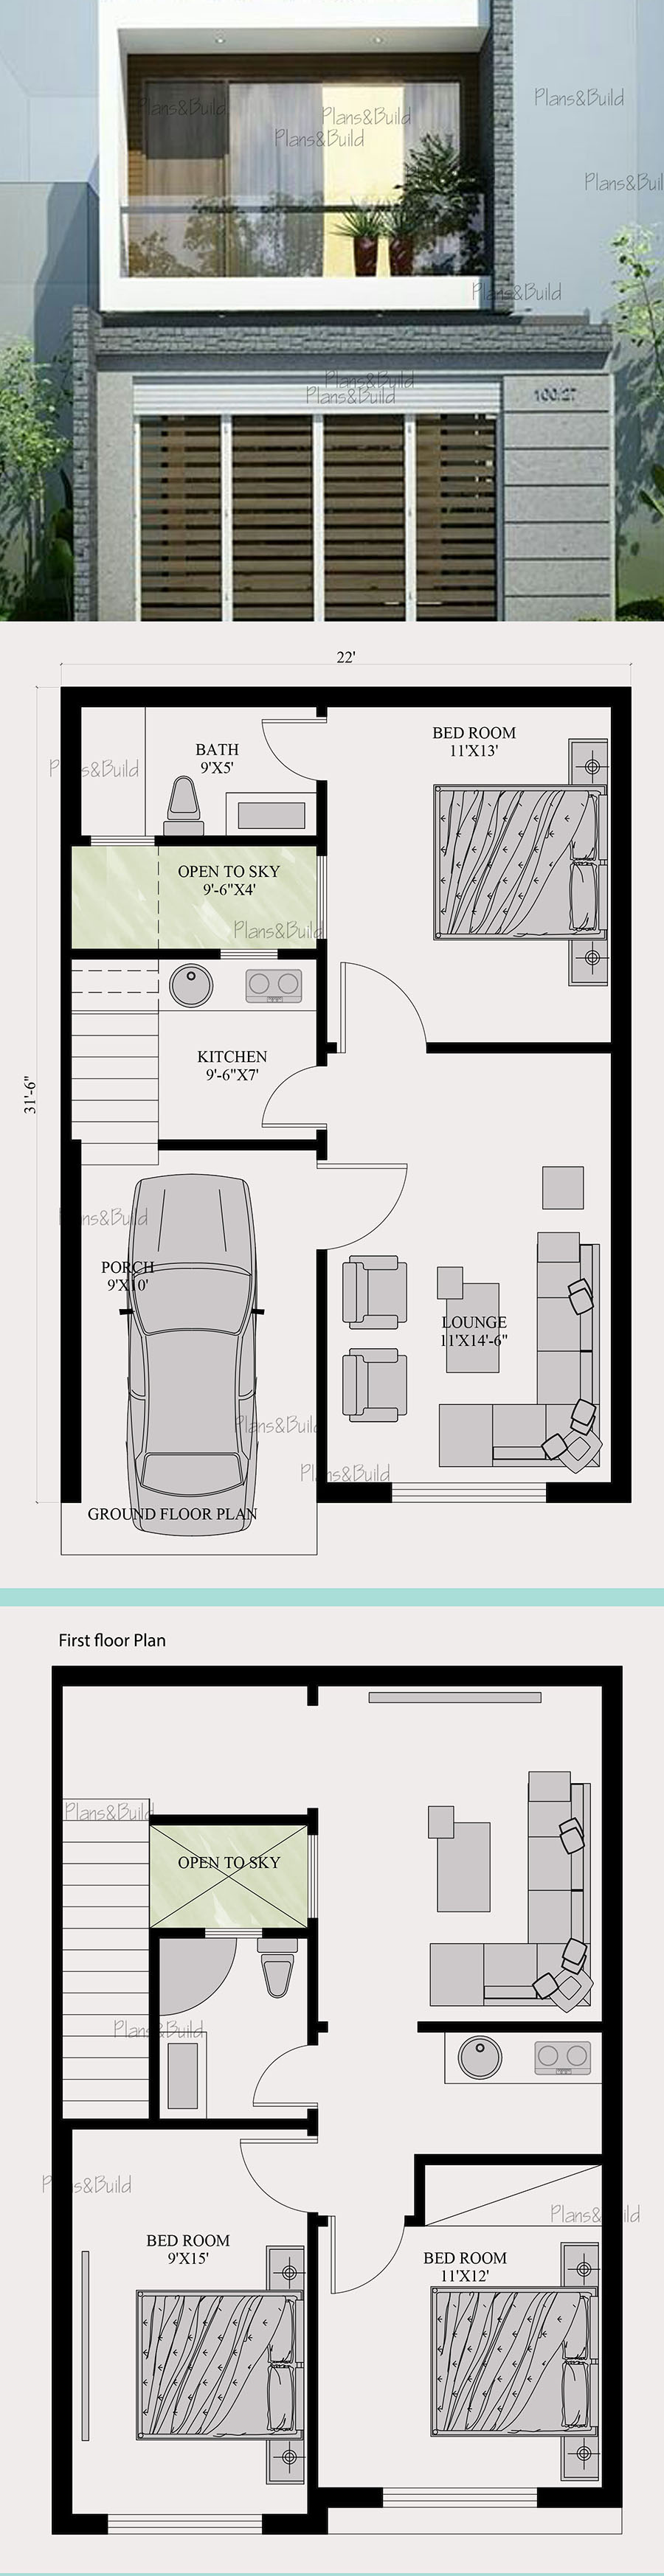 Narrow Depth House Plans Fresh Plans and Build